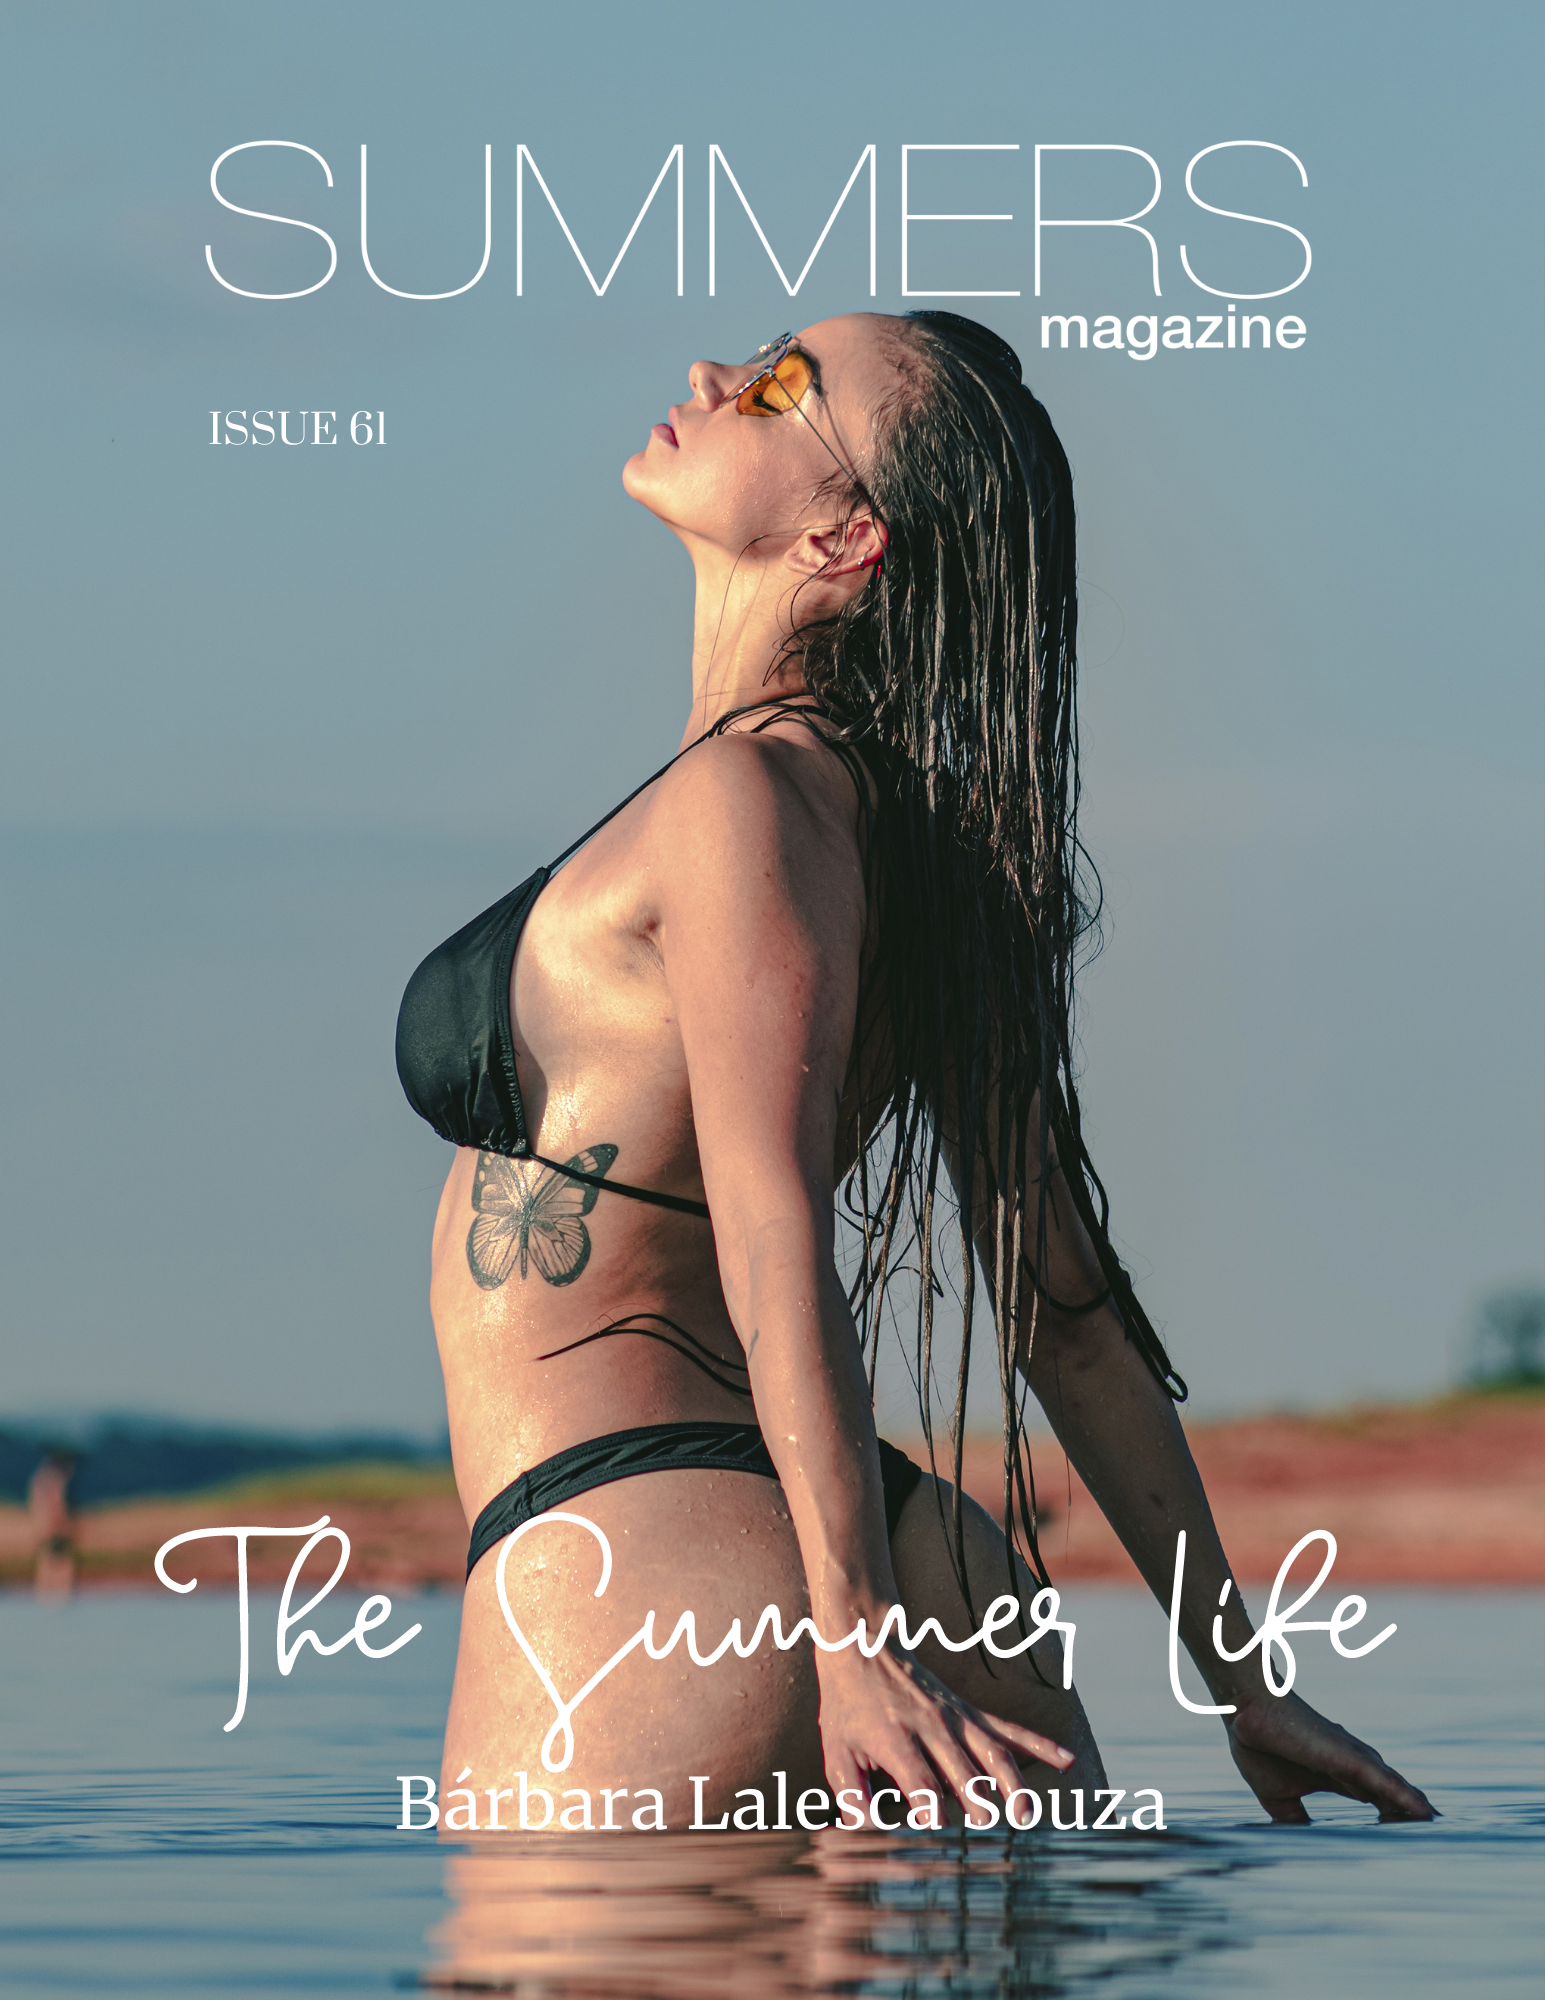 Summers Magazine Issue 61 Featuring Bárbara Lalesca Souza